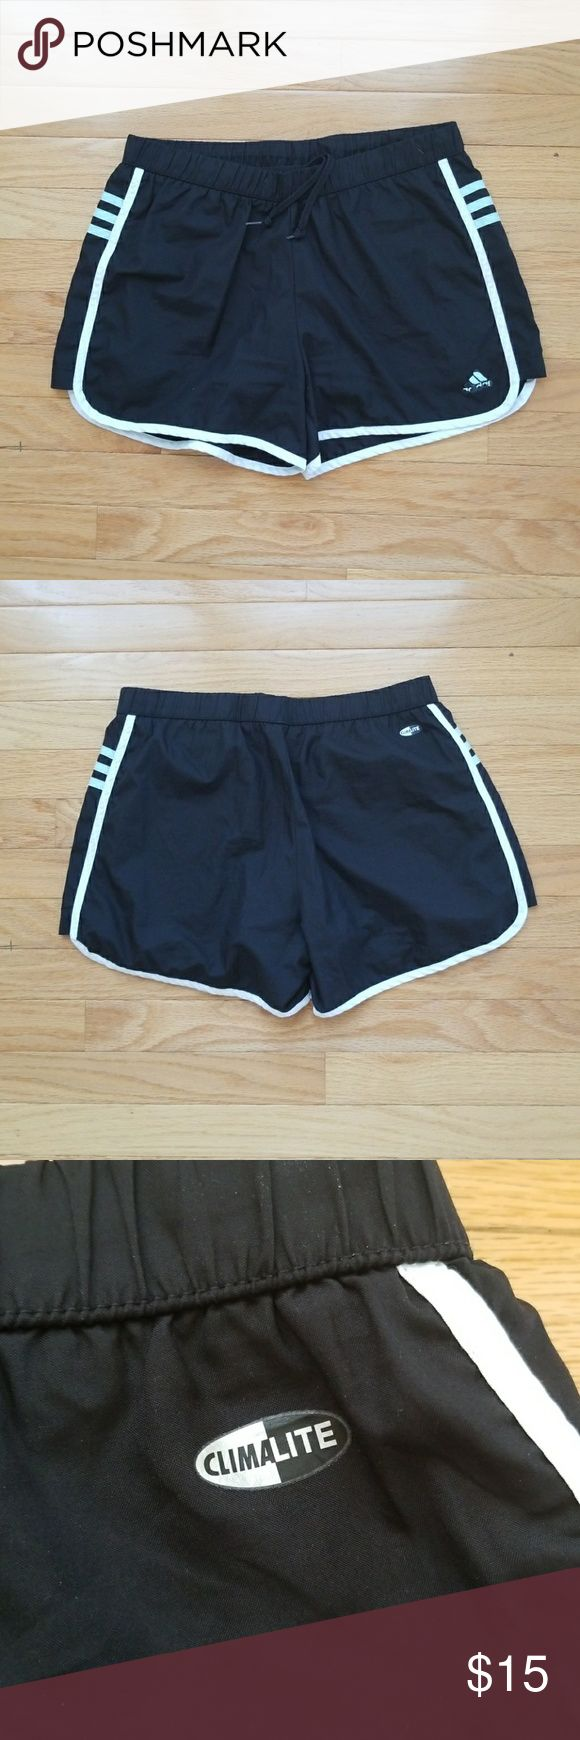 Adidas Climalite Workout Shorts Great quality and good condition Adidas Climalite workout Shorts!  Like new. The only wear is on the logo. Black layer inside!  Bundle for a cheaper price! 😊 adidas Shorts